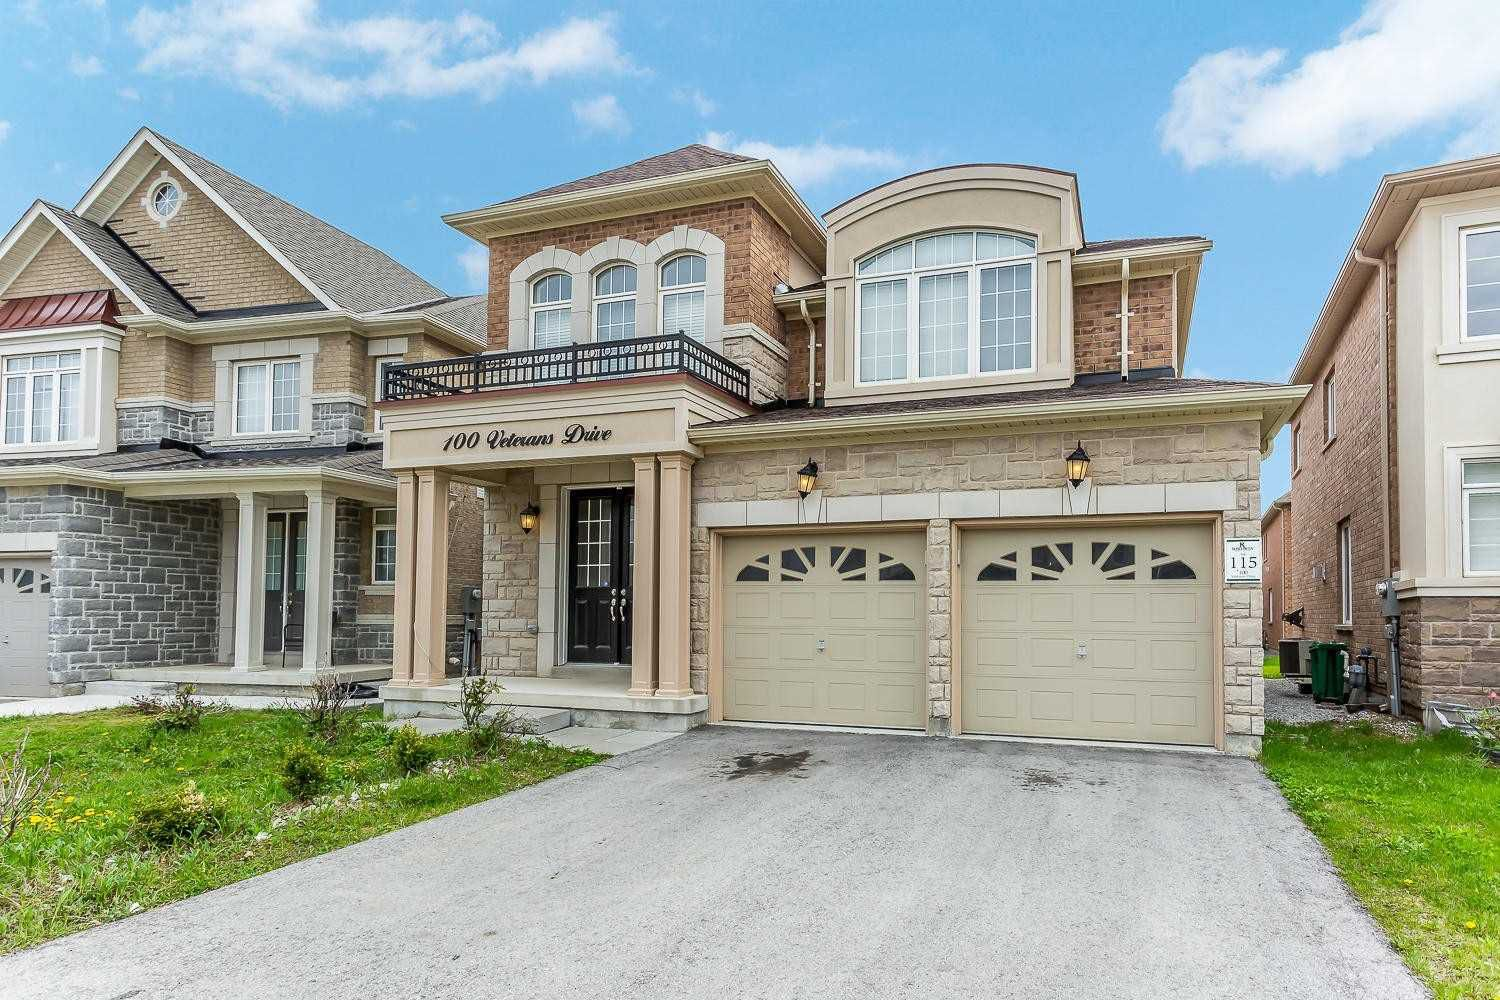 Main Photo: 100 Veterans Drive in Brampton: Northwest Brampton House (2-Storey) for sale : MLS®# W4460583